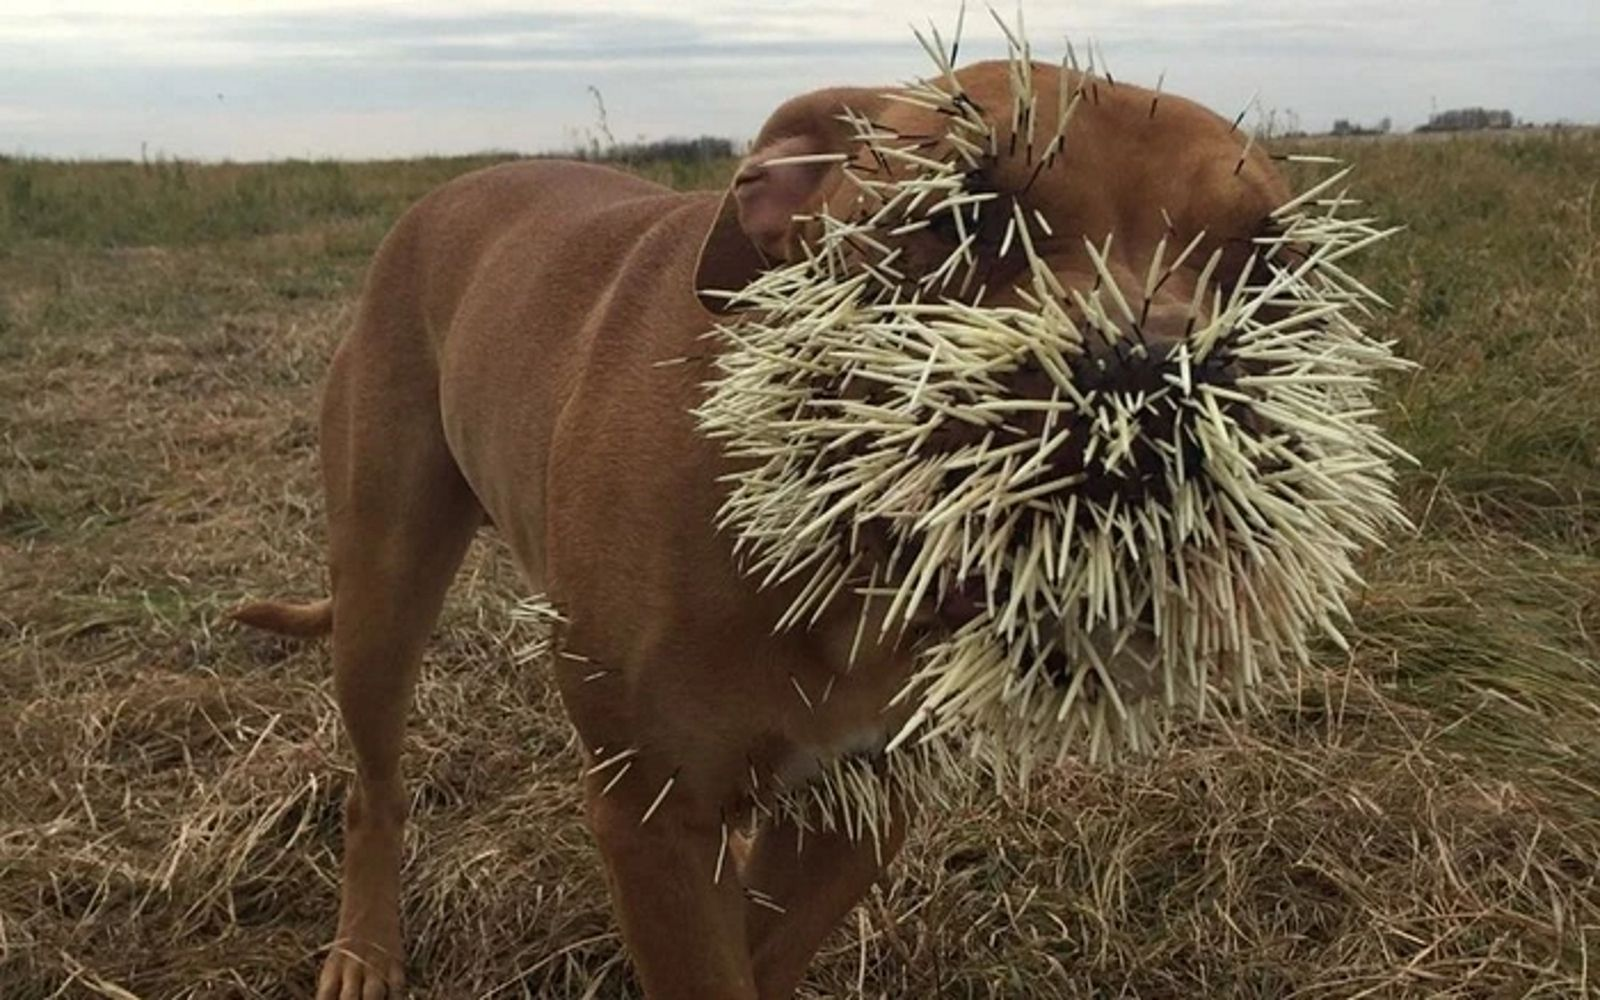 1f4a7539b01353b5ab867c33efffd424 - How To Get Porcupine Quills Out Of A Dog